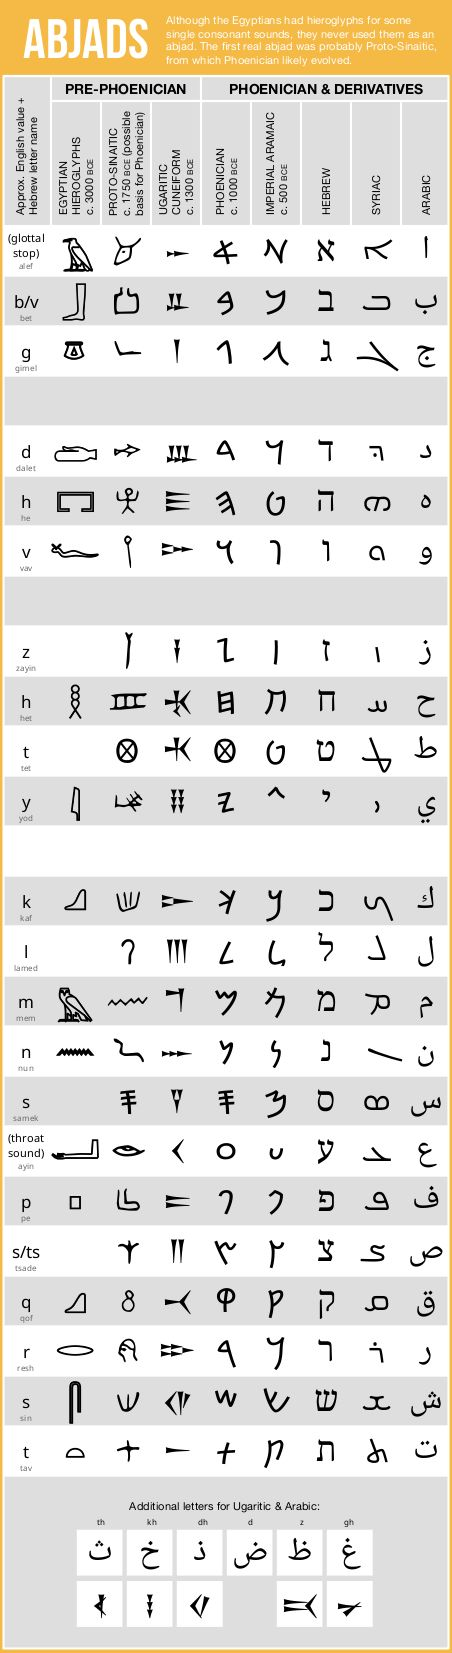 Httpwww Overlordsofchaos Comhtmlorigin Of The Word Jew Html: Best 25+ Egyptian Symbols Ideas On Pinterest